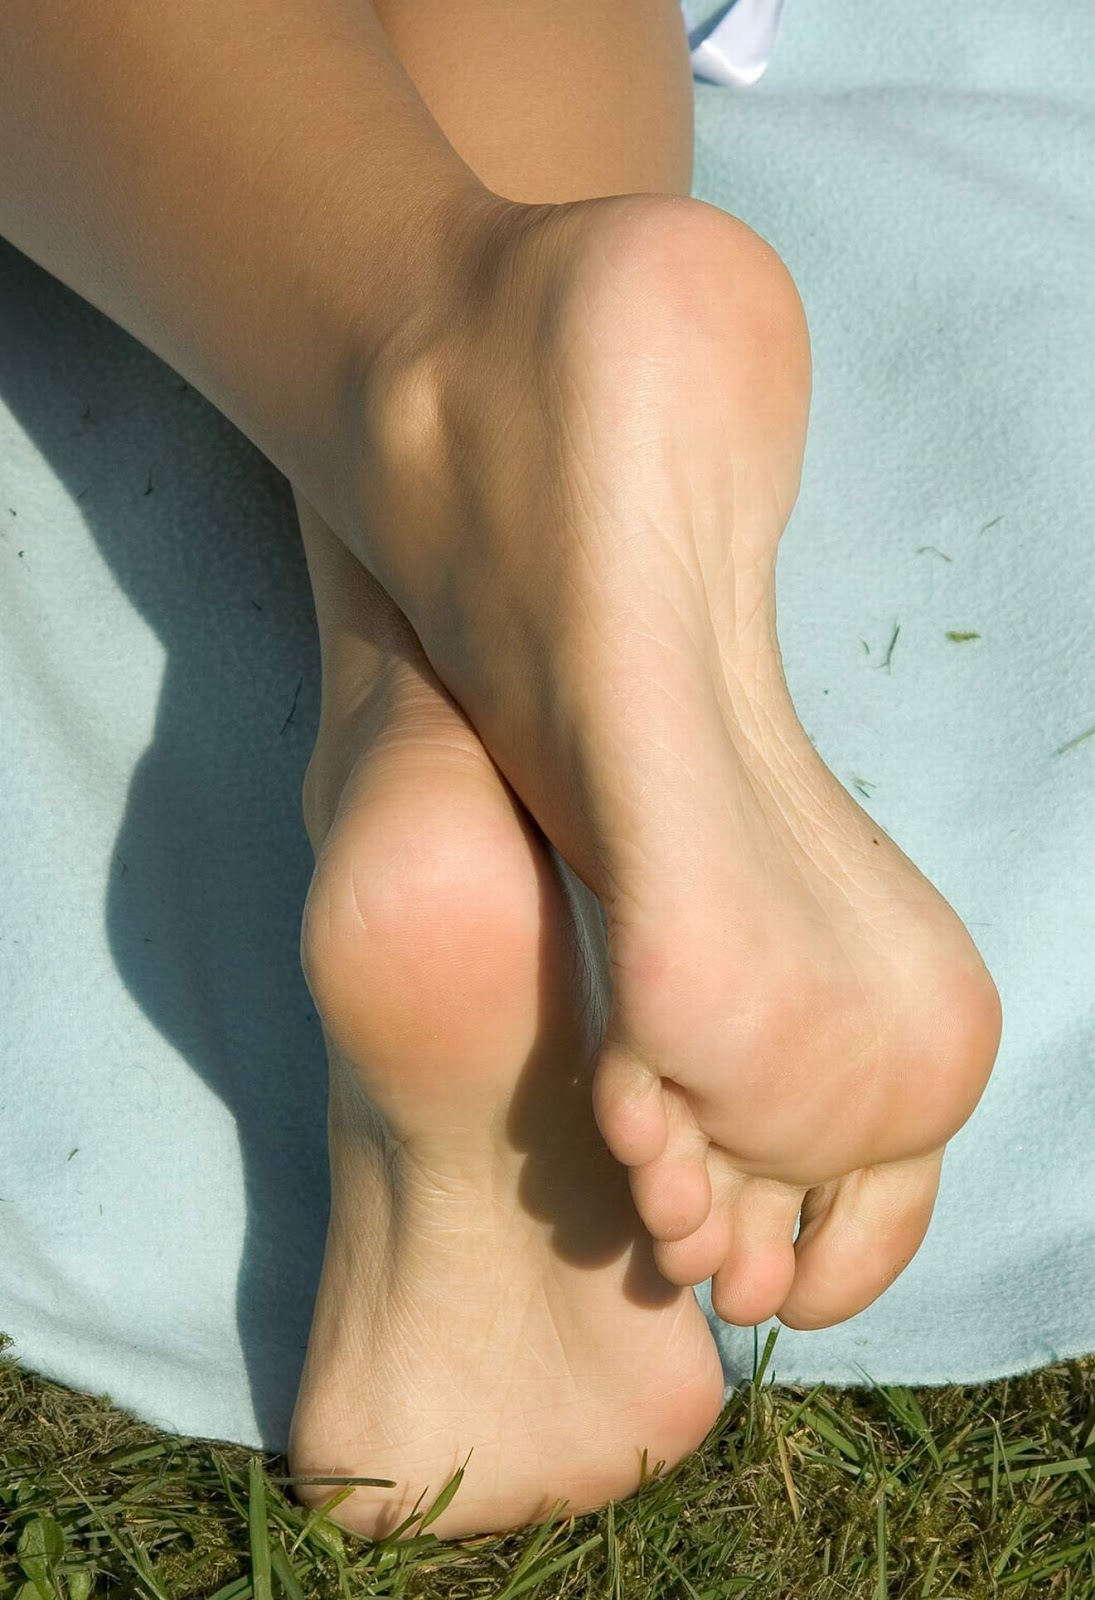 Foot fetish soles toes footjob handjob simulation 1